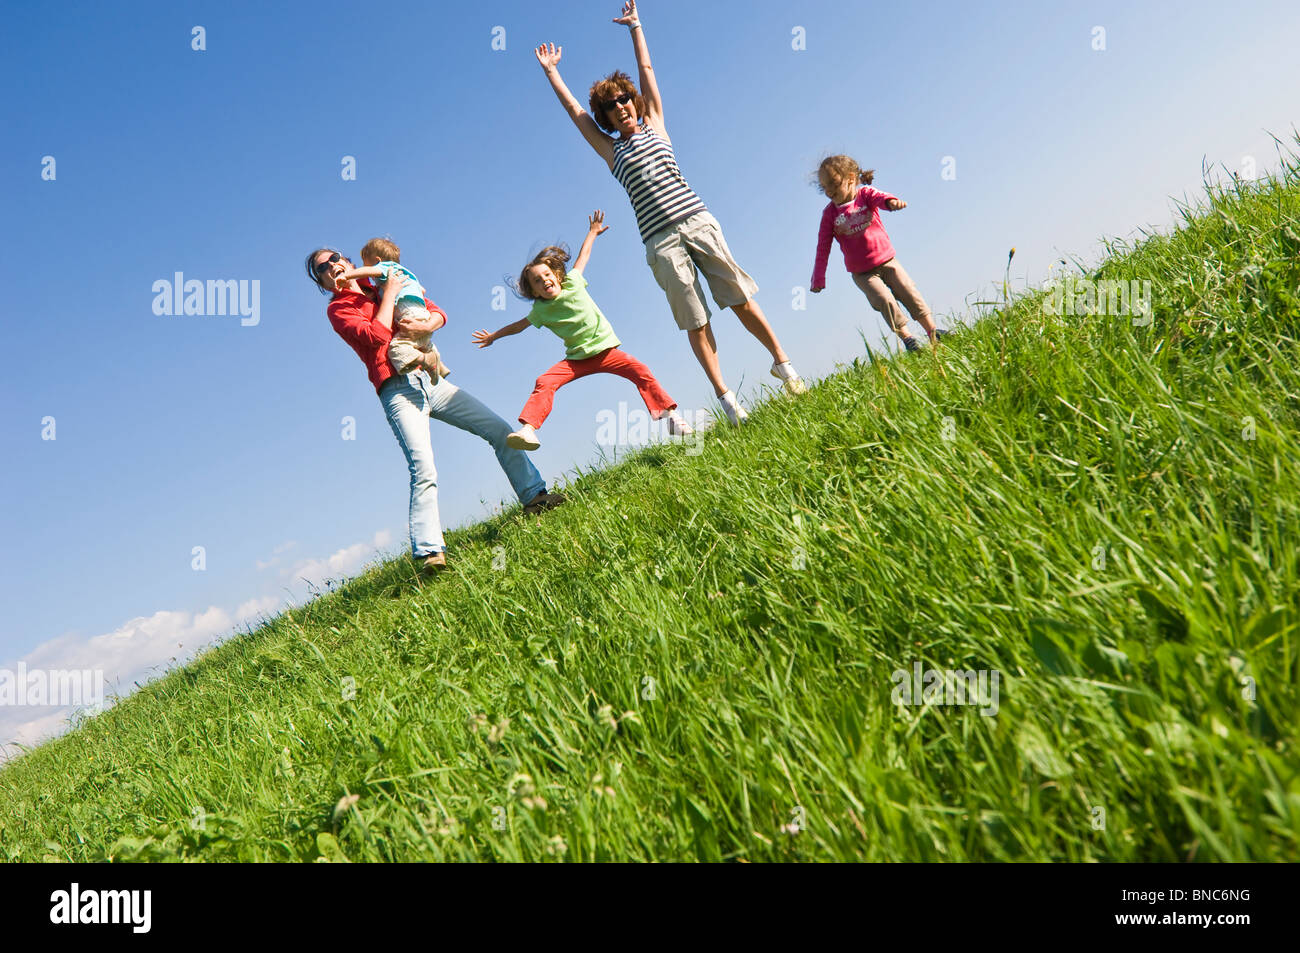 Family playing with joy on a grassy hill in Trentino, Italy. Stock Photo